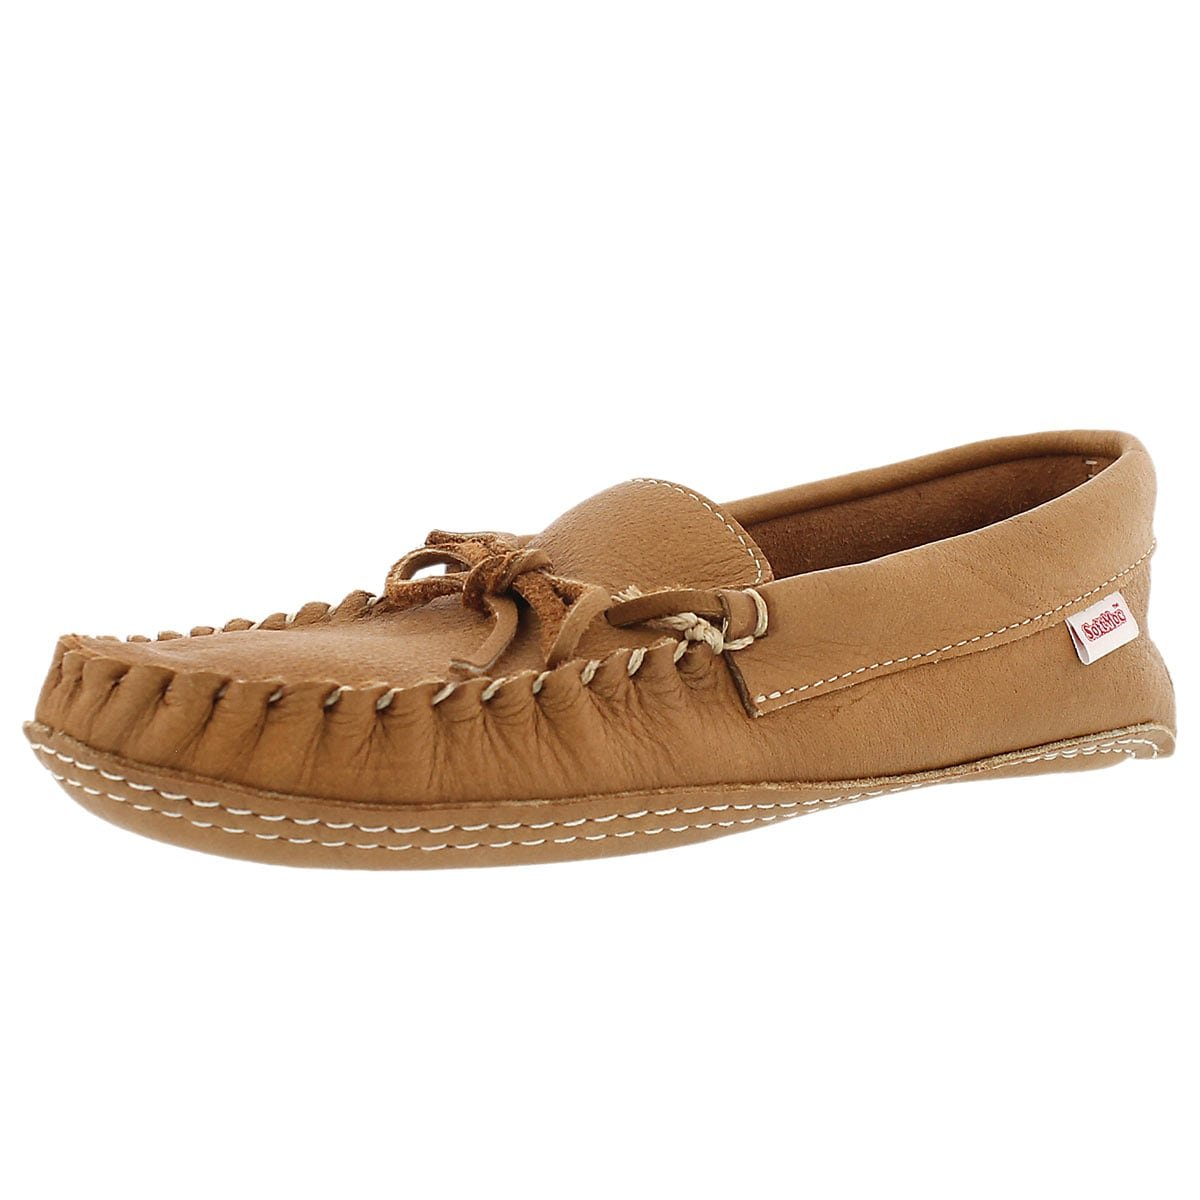 SoftMoc Men's 1131 Double Sole Unlined Moosehide Moccasin